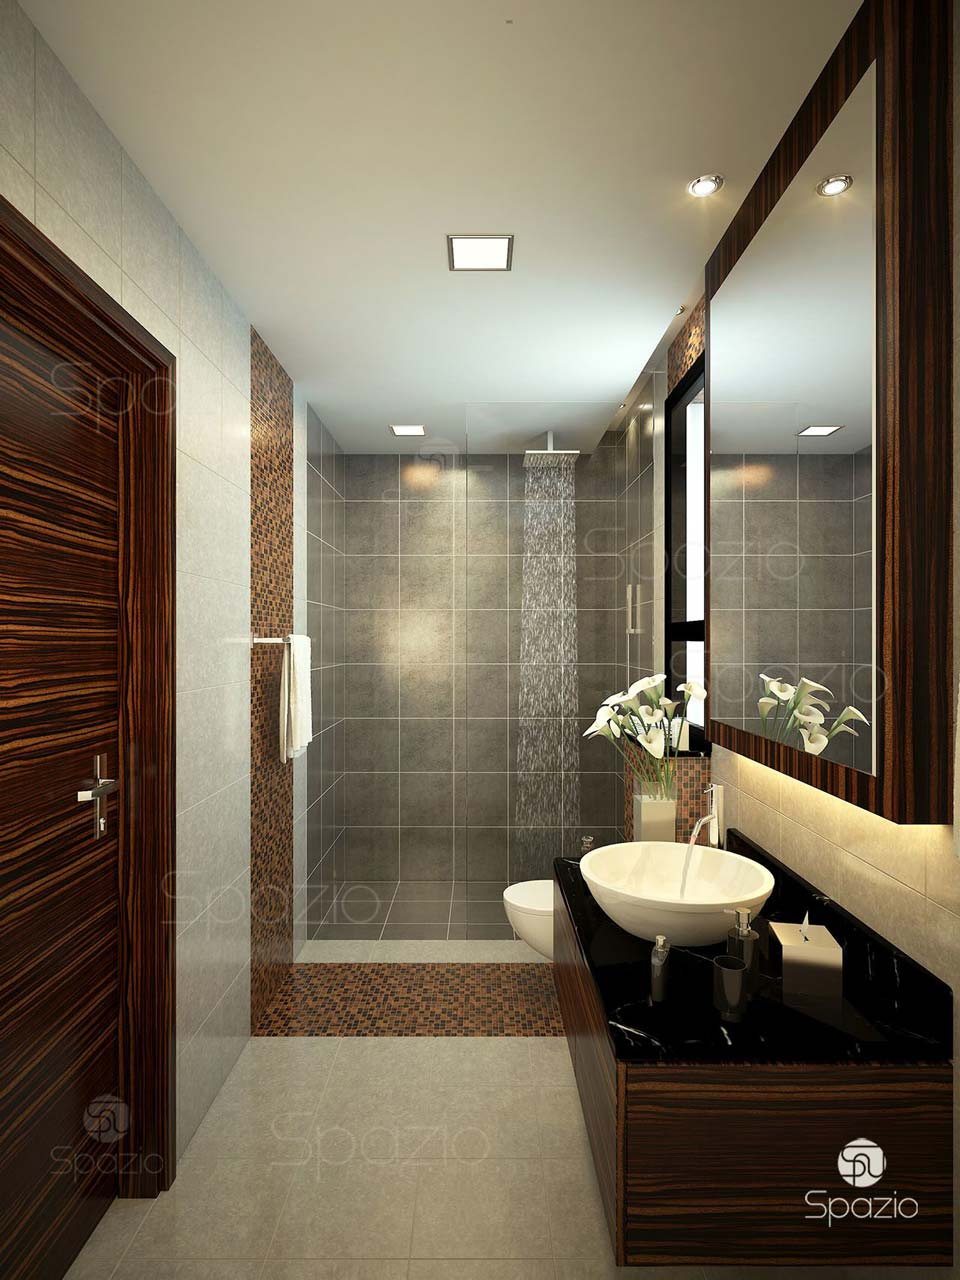 Bathroom Design In Dubai